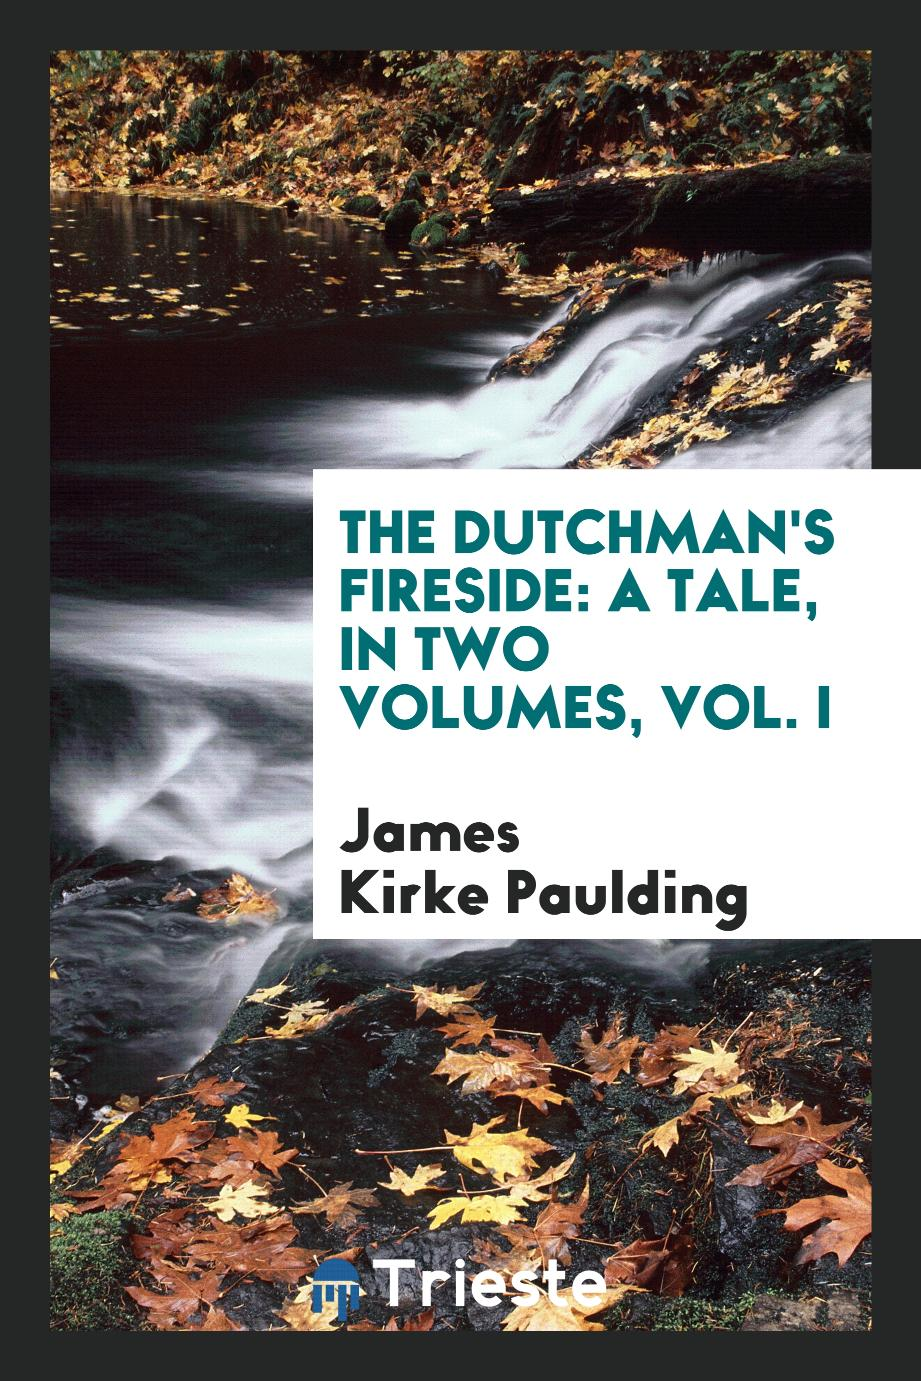 The Dutchman's Fireside: A Tale, in Two Volumes, Vol. I